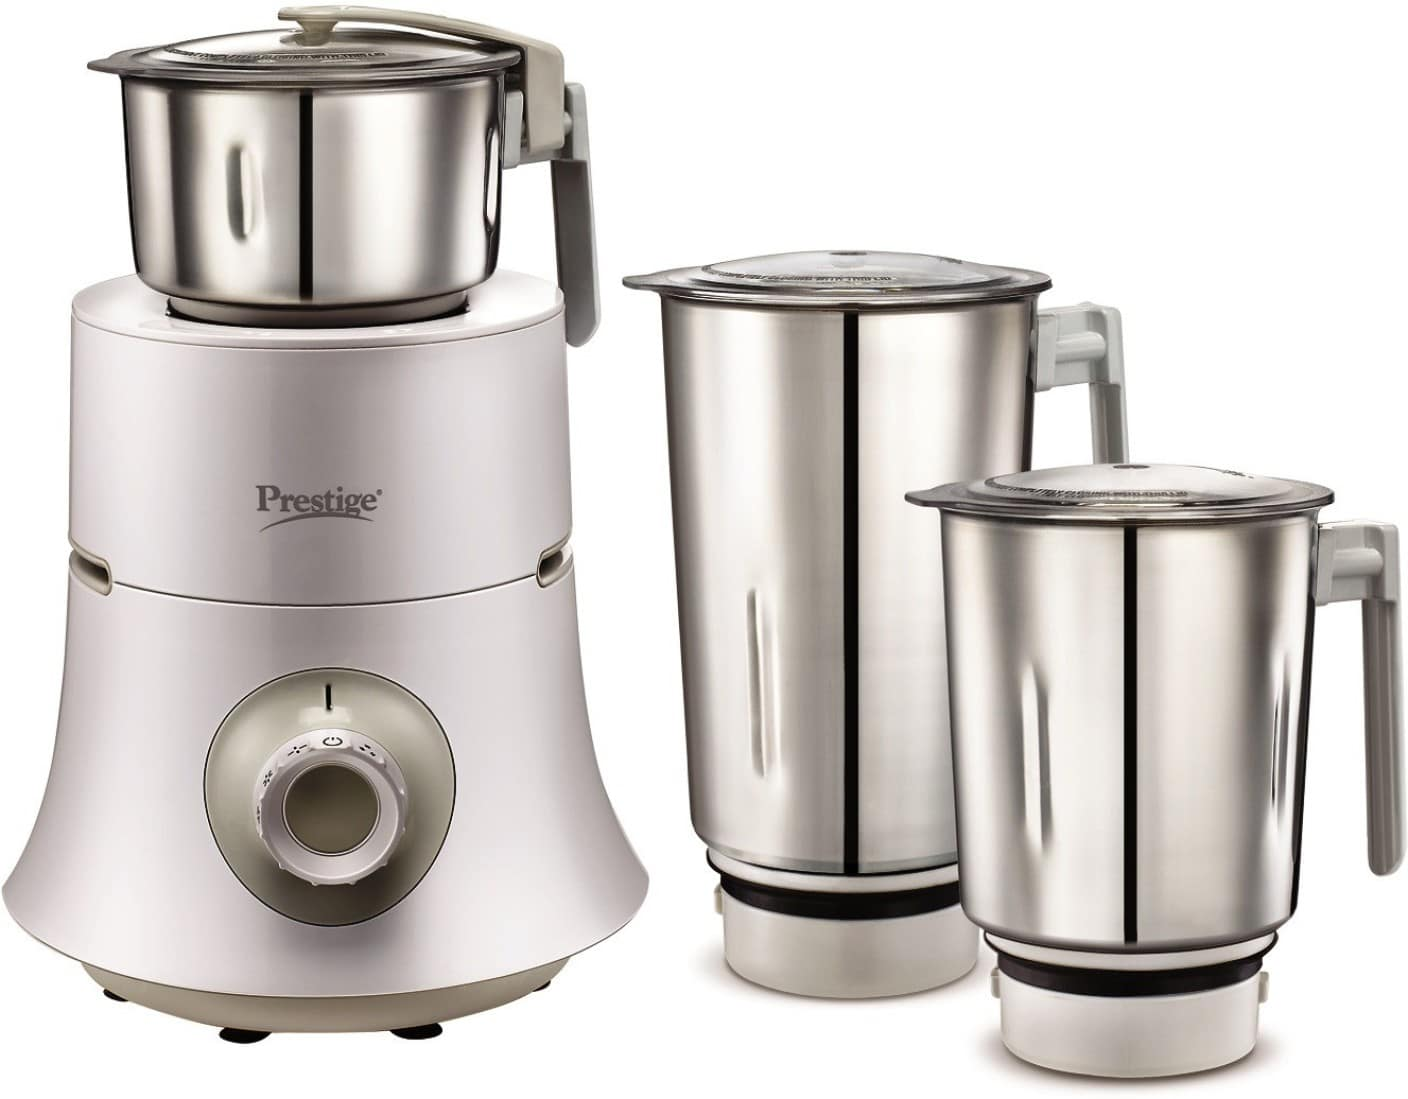 Prestige Teon 750 W Mixer Grinder  (White, 3 Jars)(3hours left)